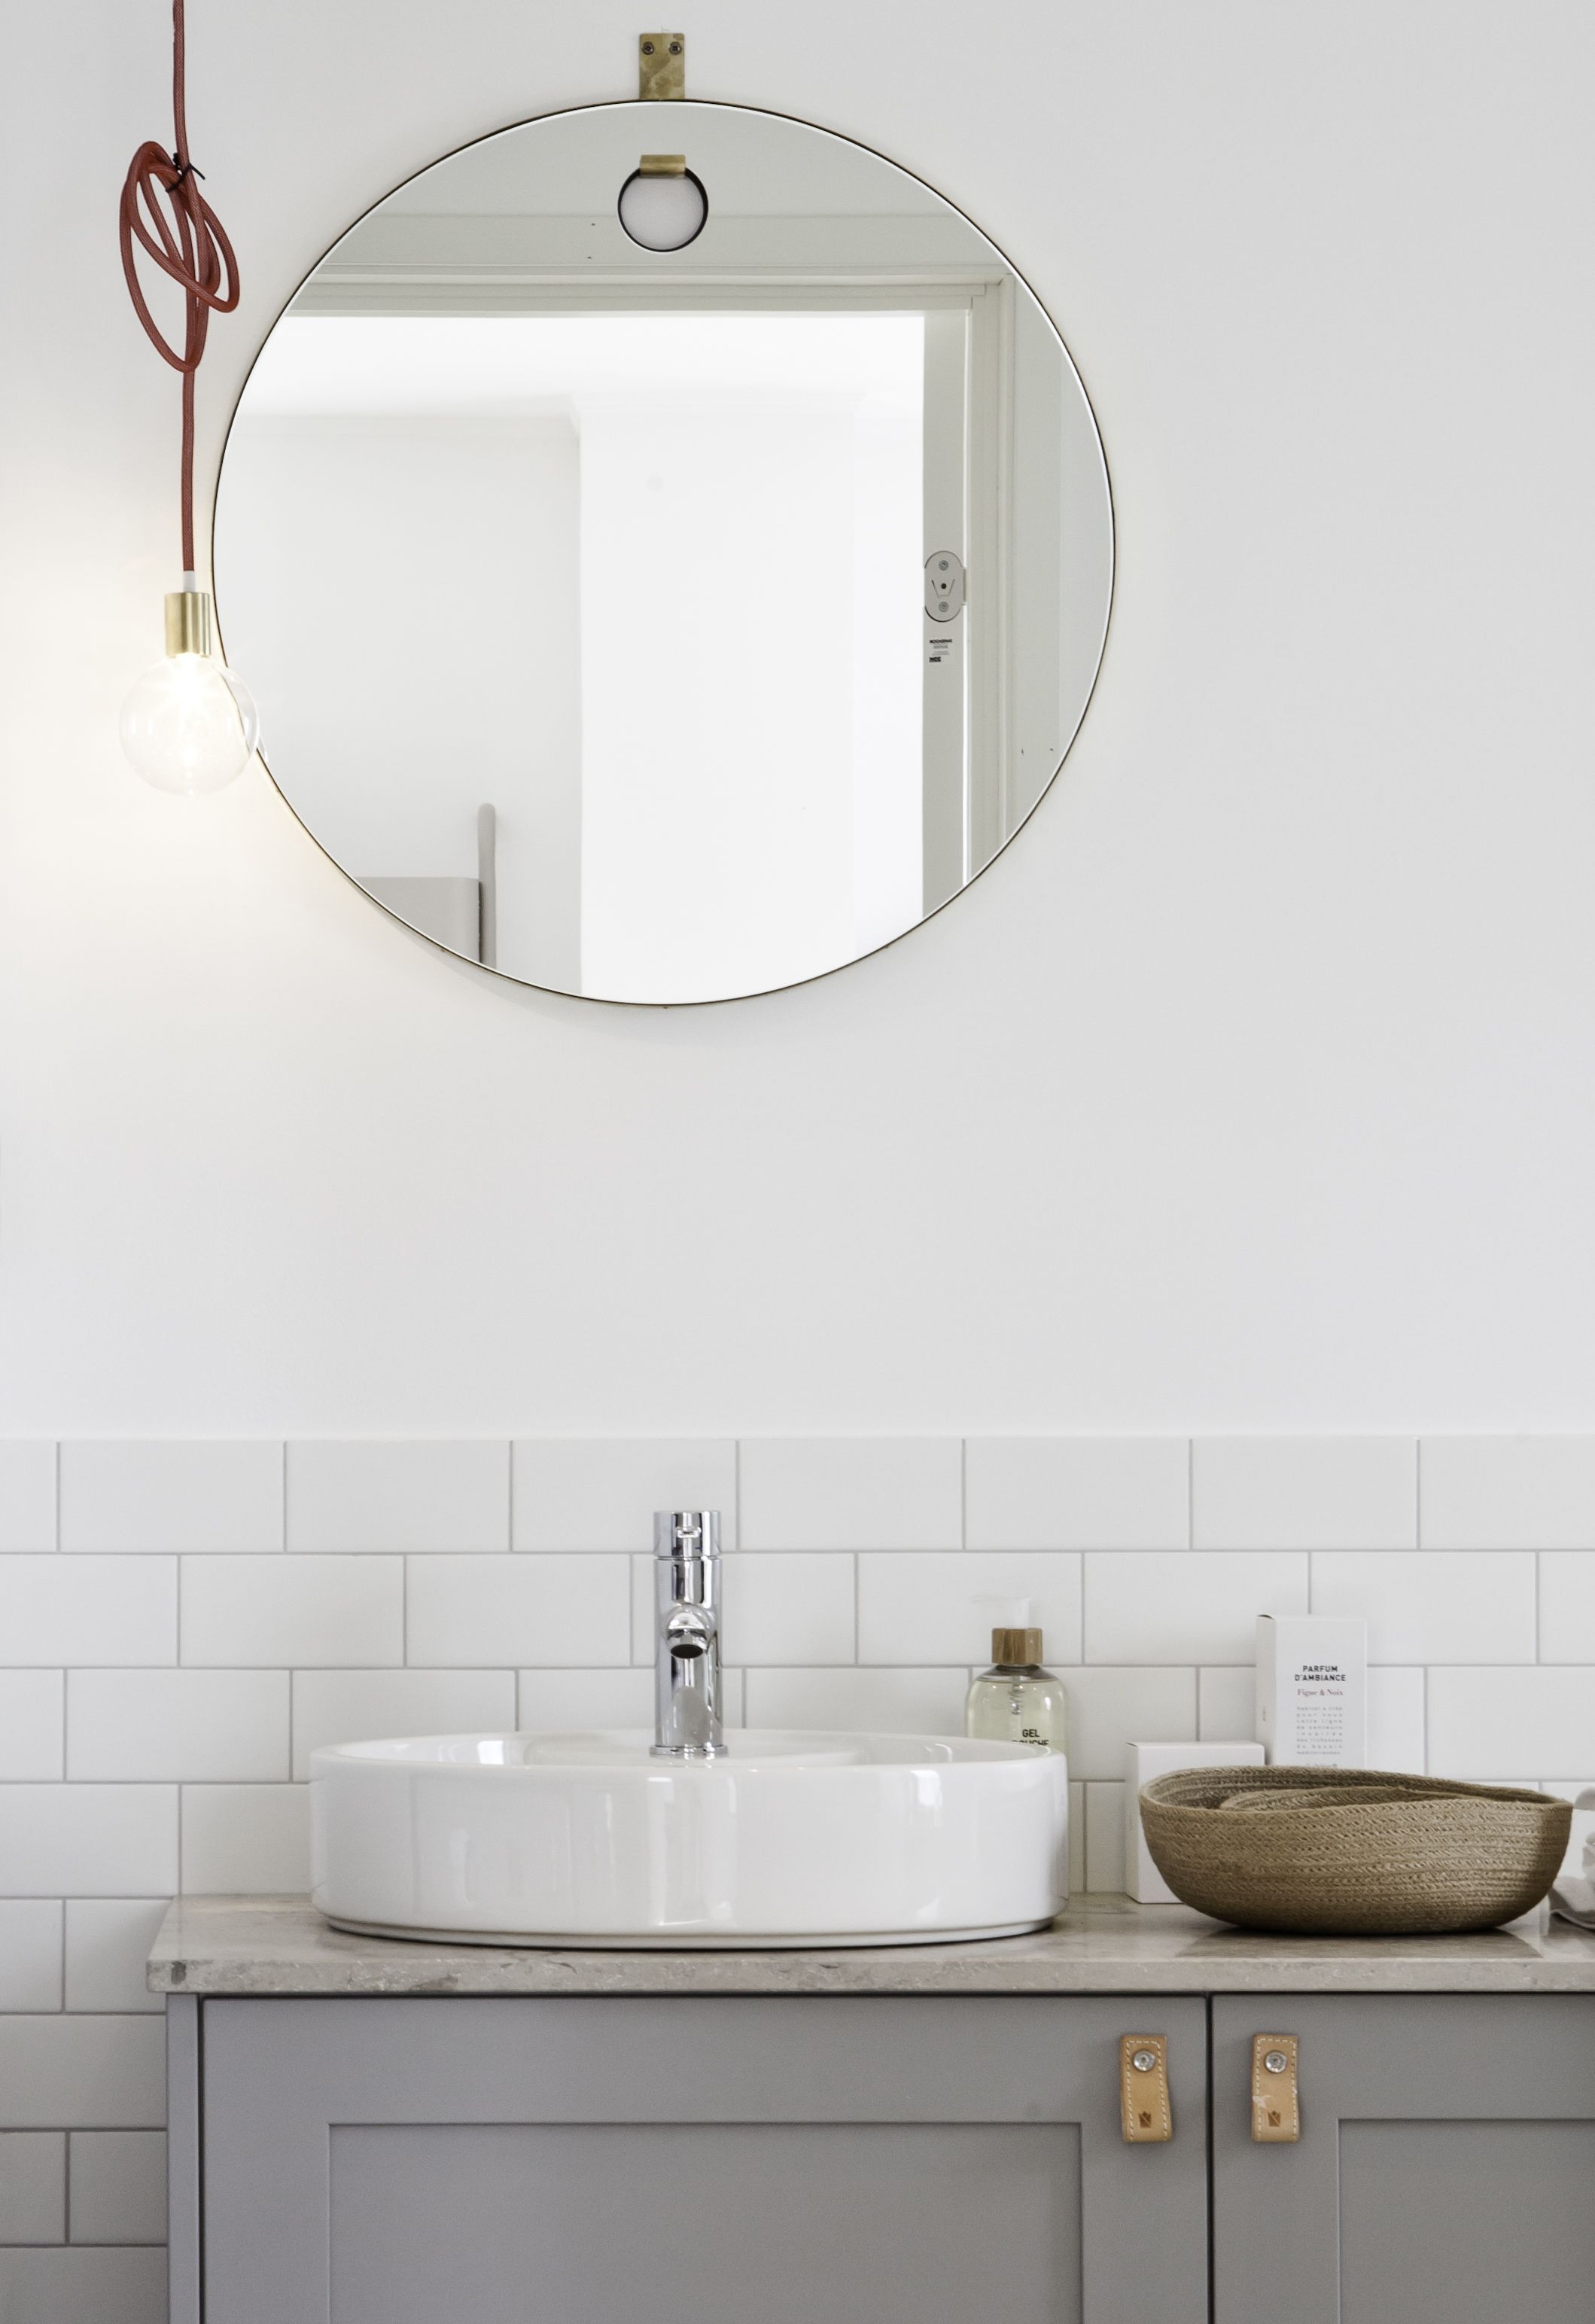 Oval sink round mirror show home by Blooc